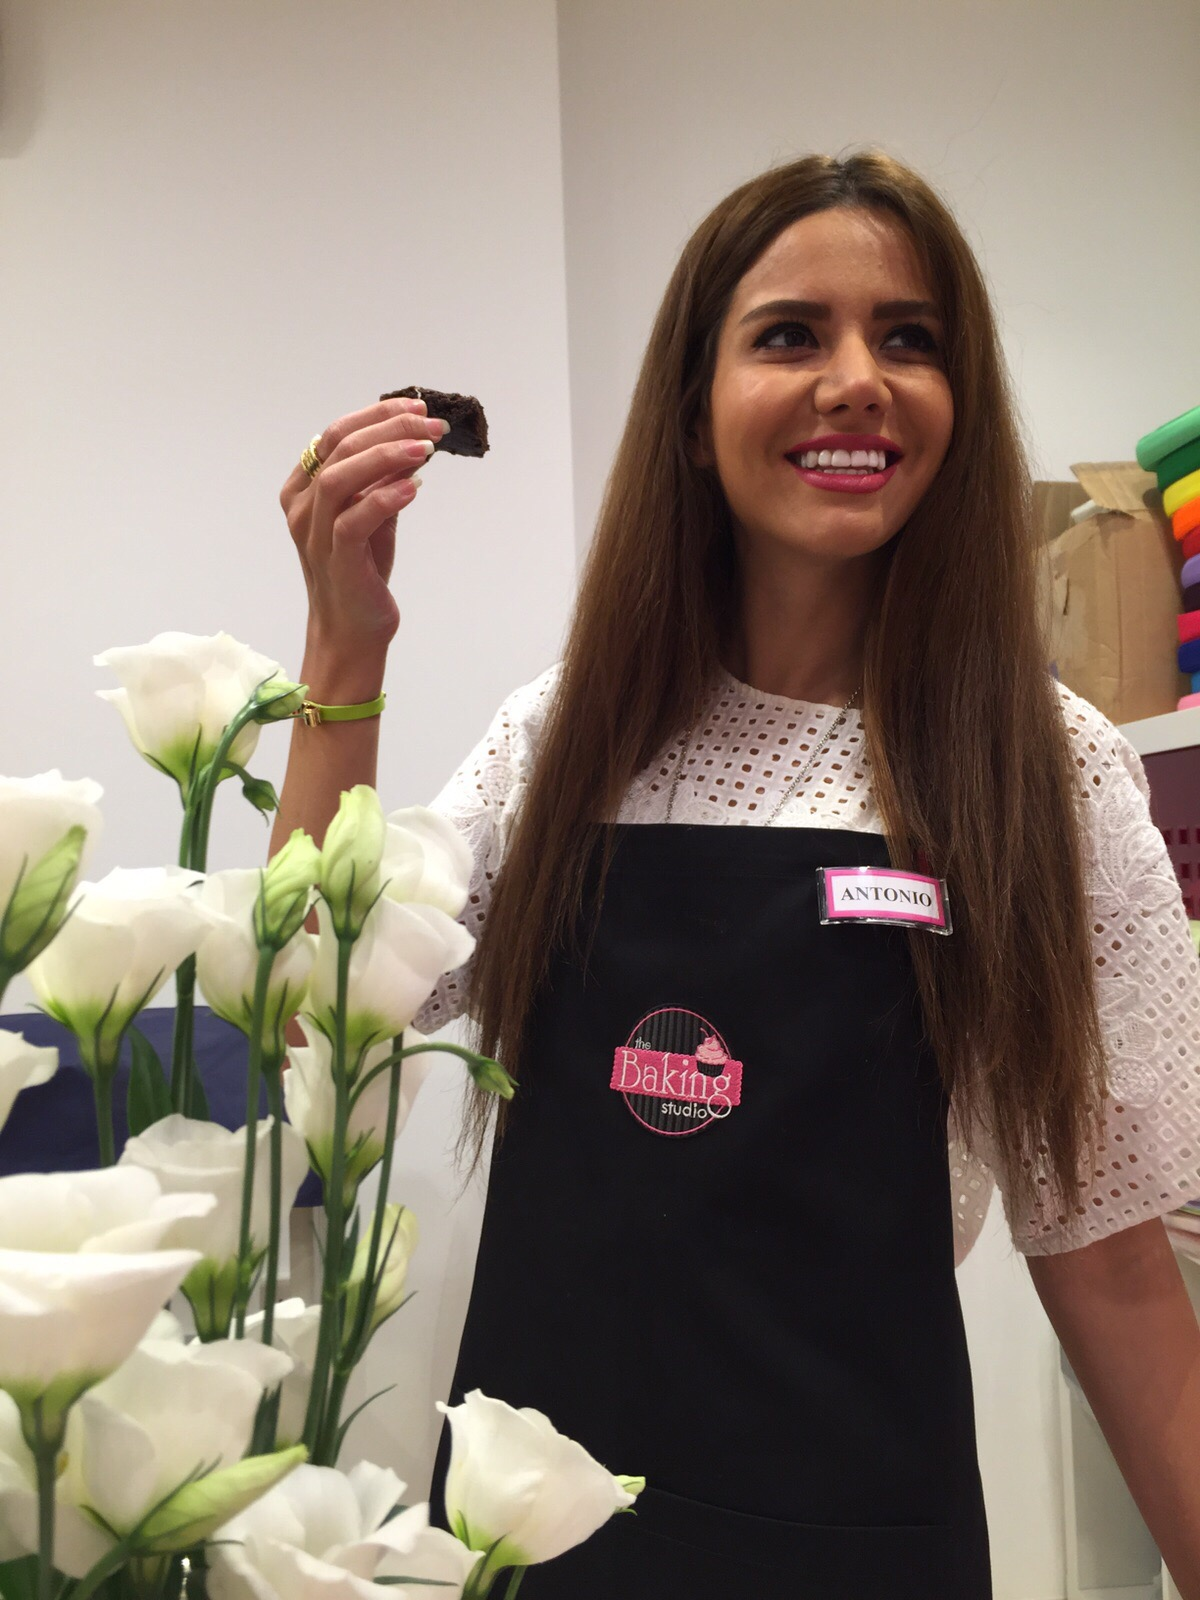 The Baking Studio ! – Official Page of Setareh Raeisi